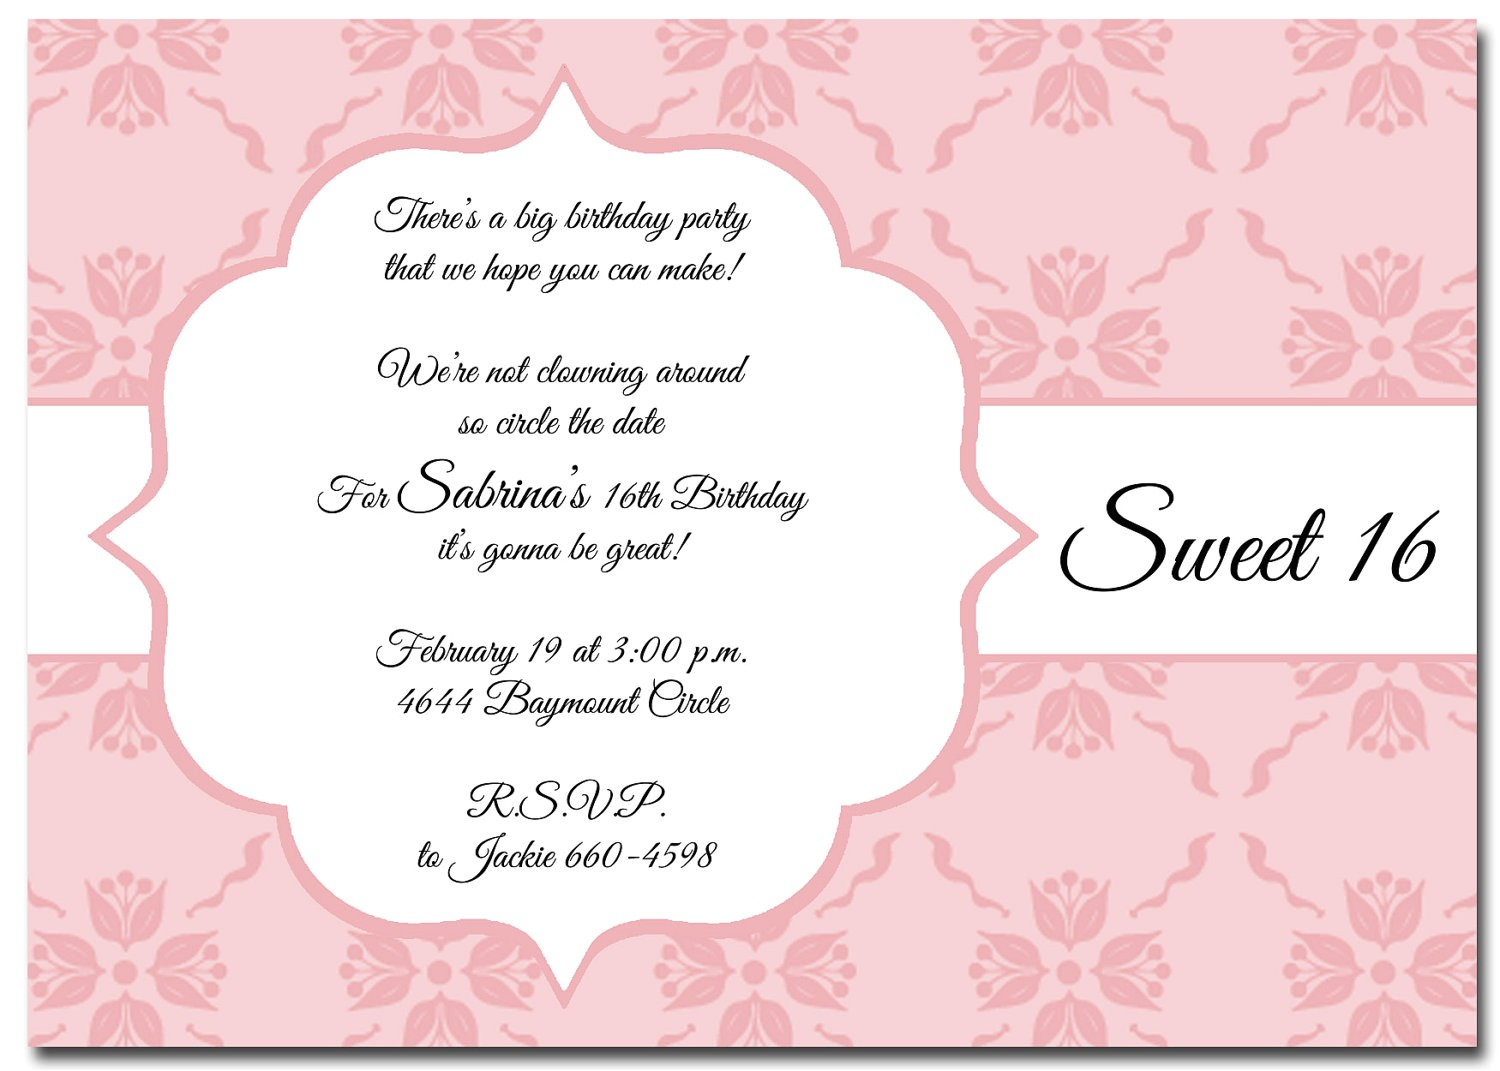 868411 elegant frame birthday invitations